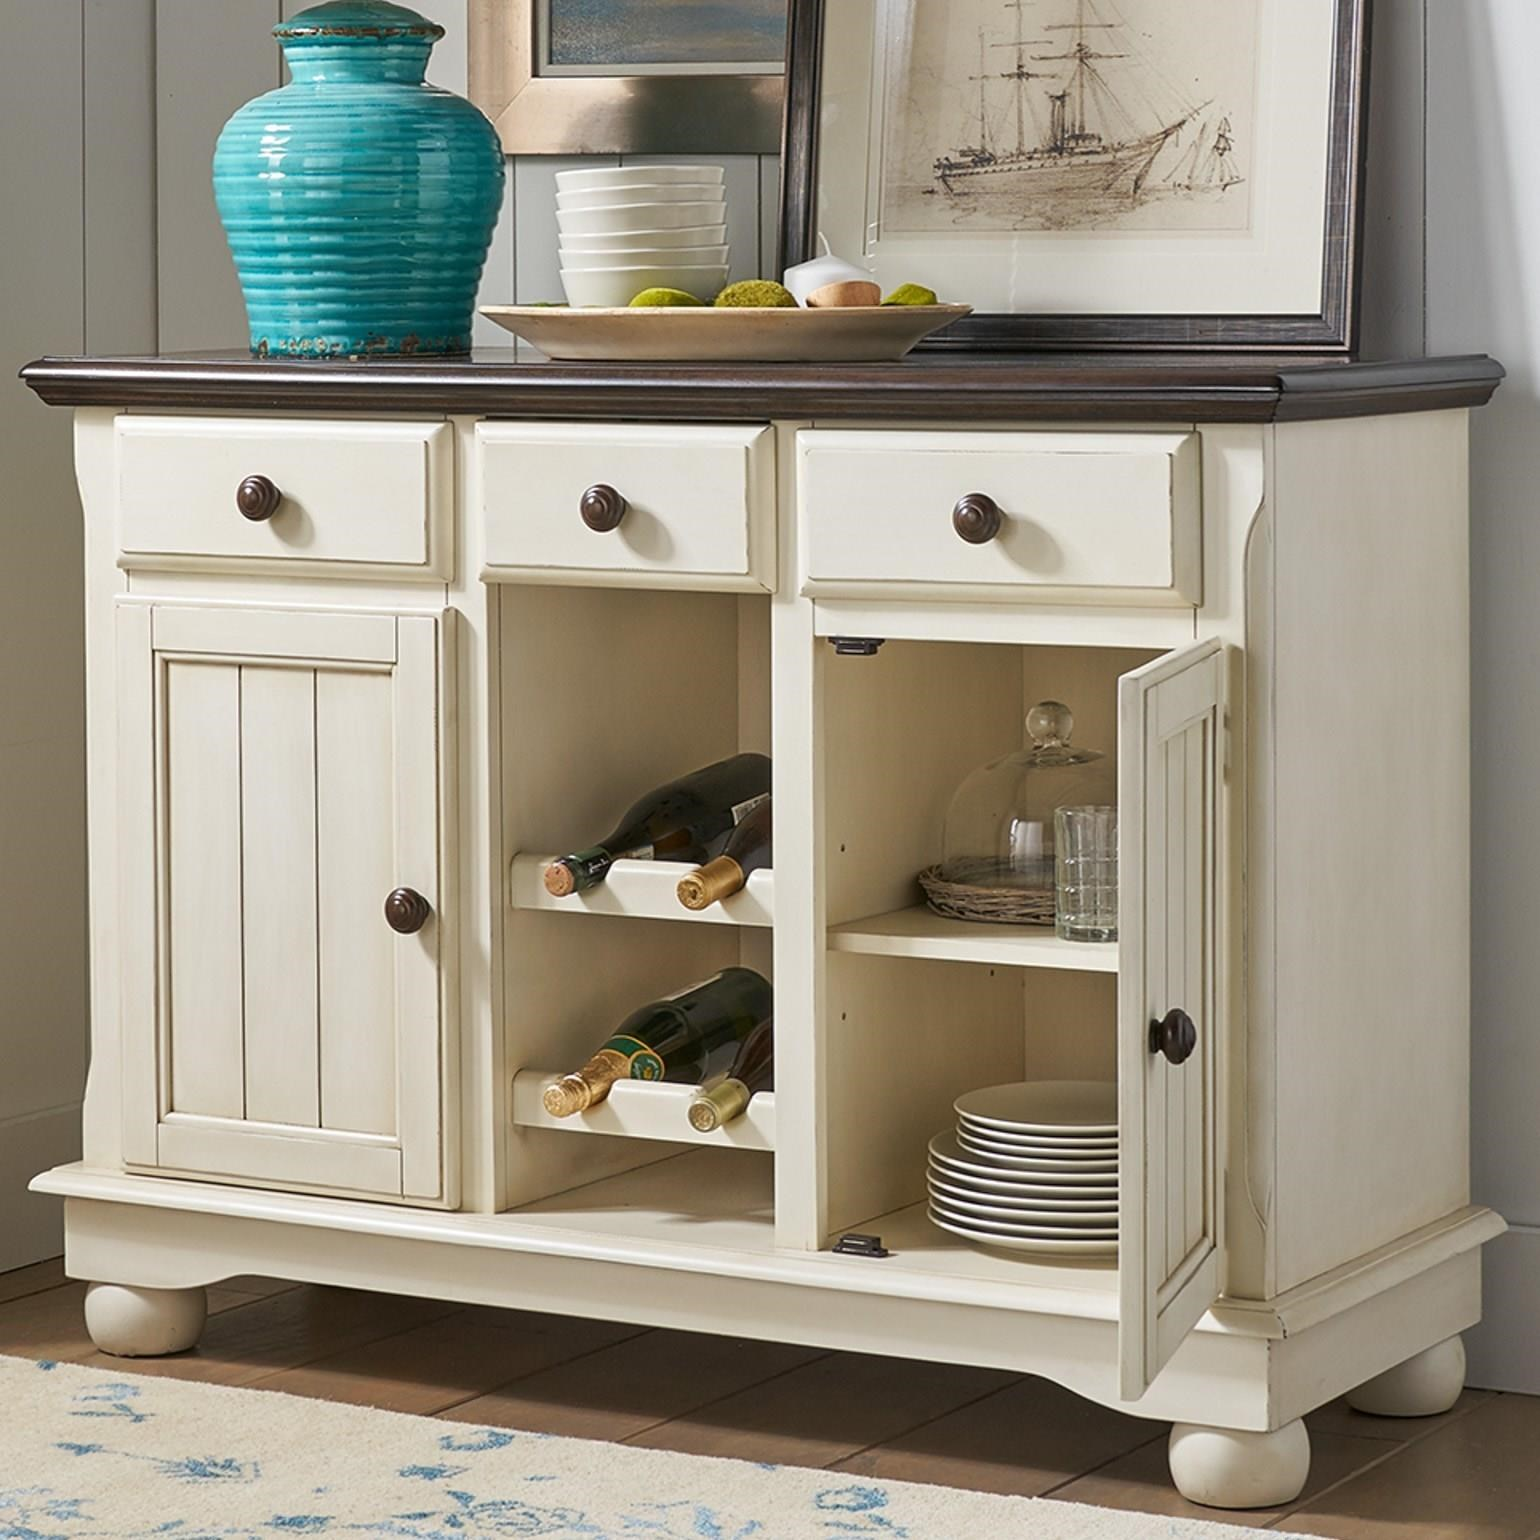 British Isles - CO Dining Room Server by AAmerica at Zak's Home